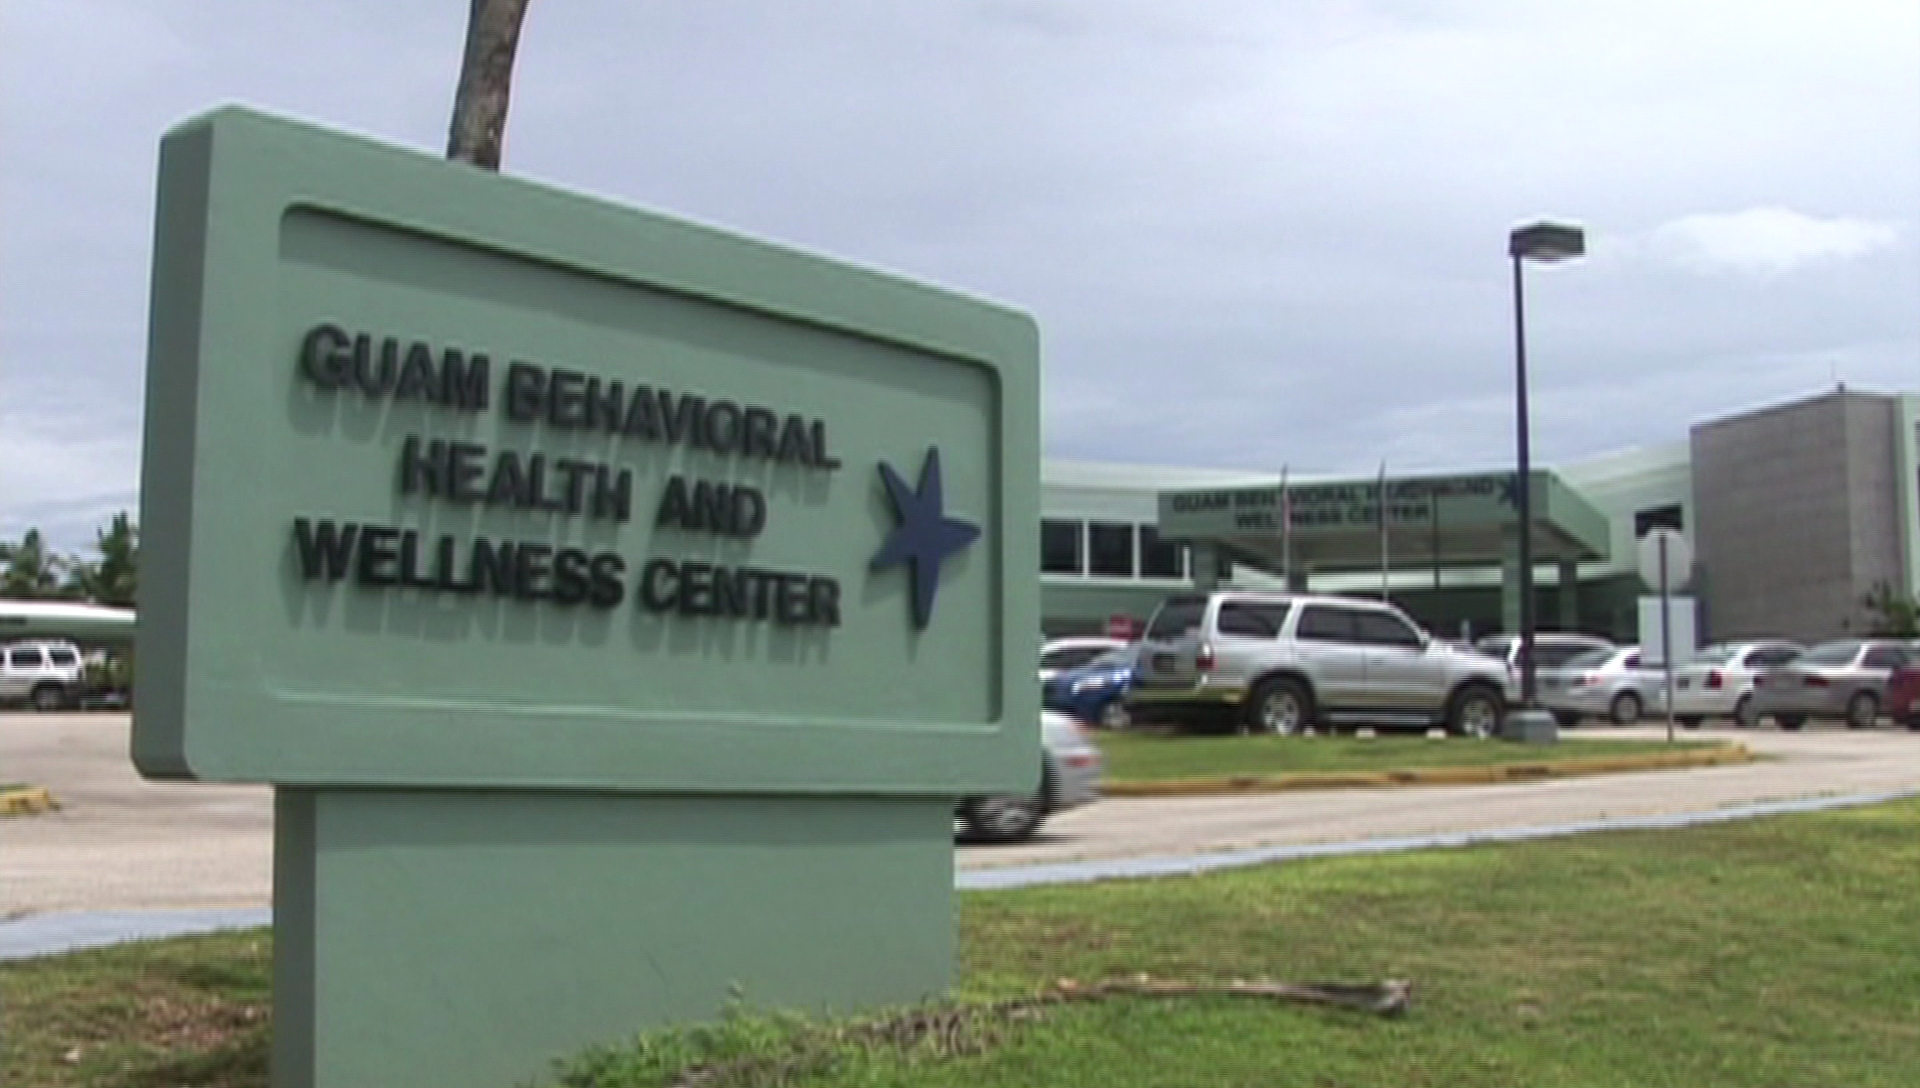 Florida Providers Threaten To Discharge Guam Mental Health Patients